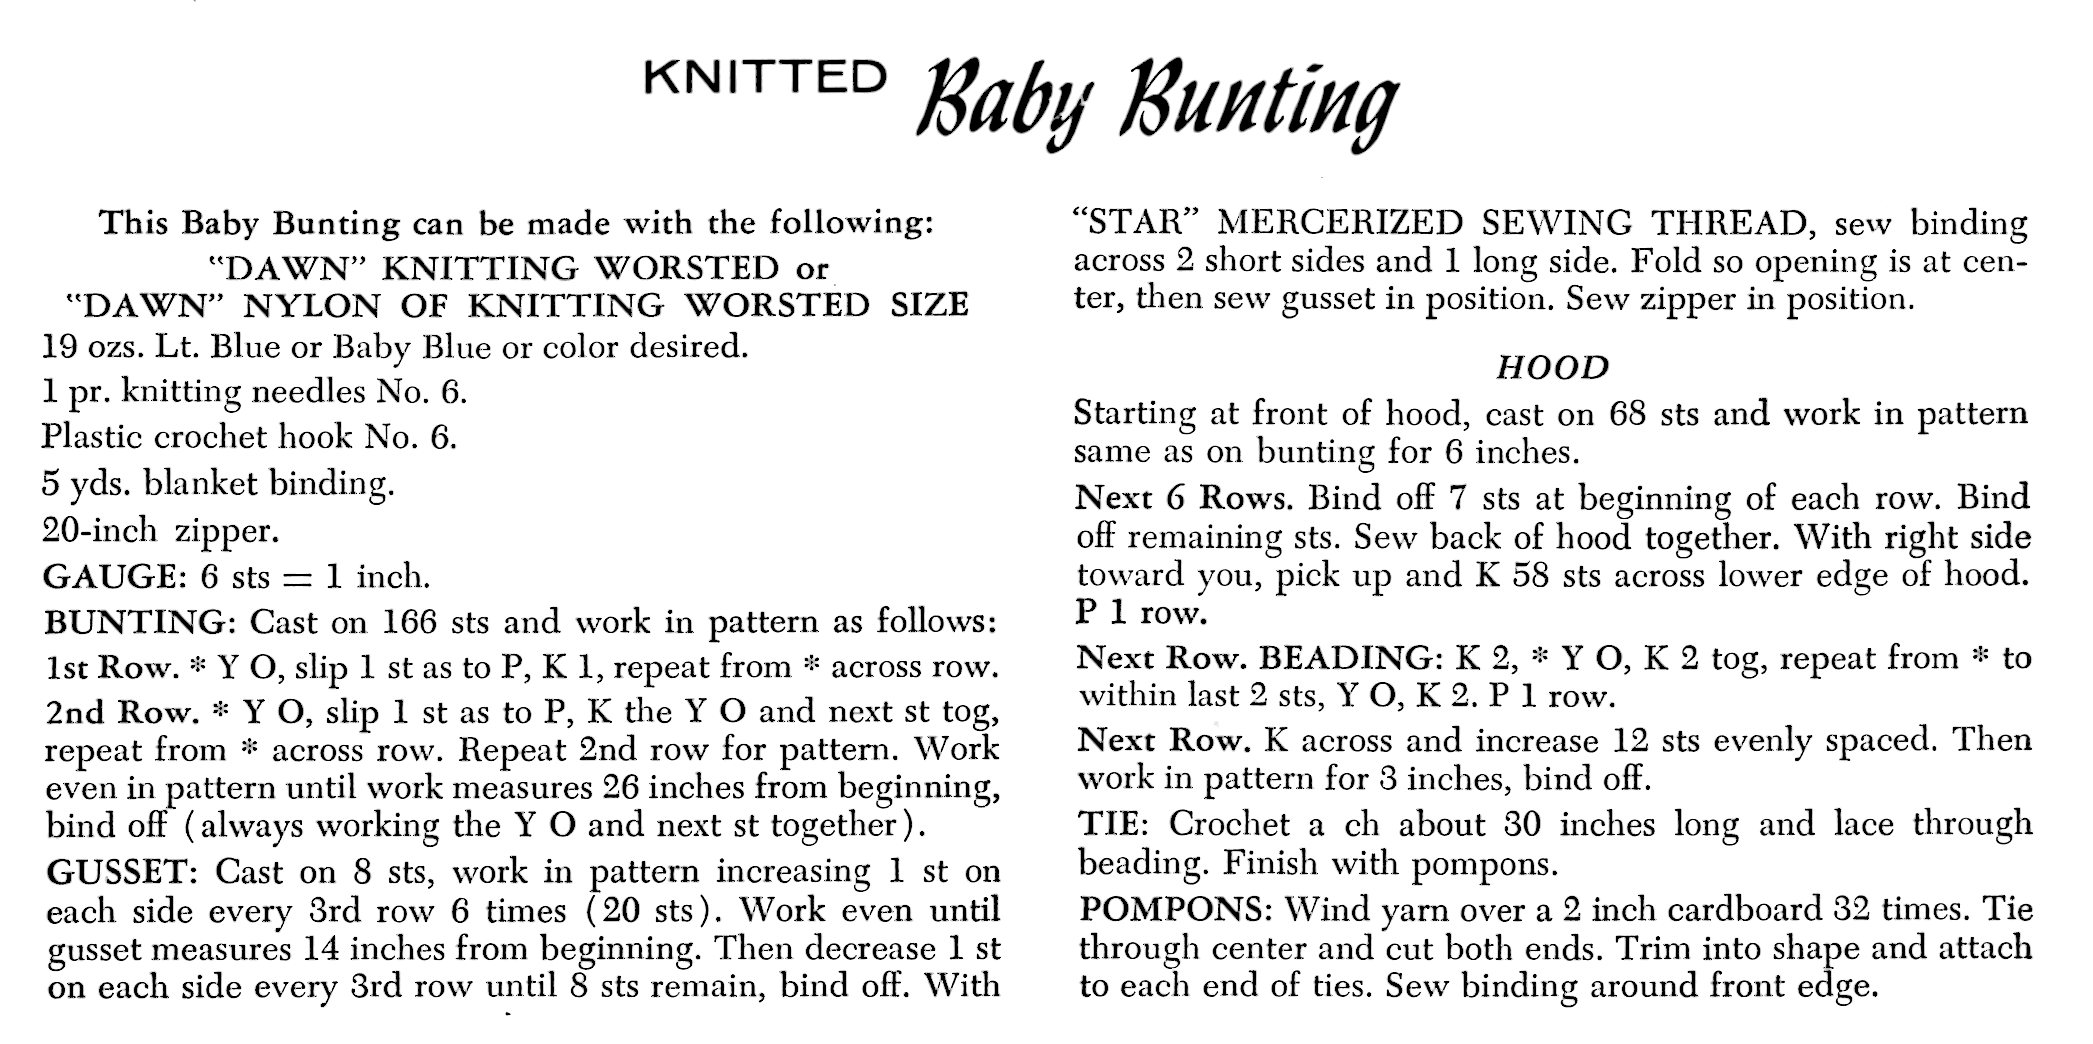 Knitting Patterns With Picture Instructions : vintage knitting pattern Archives - Vintage Crafts and More